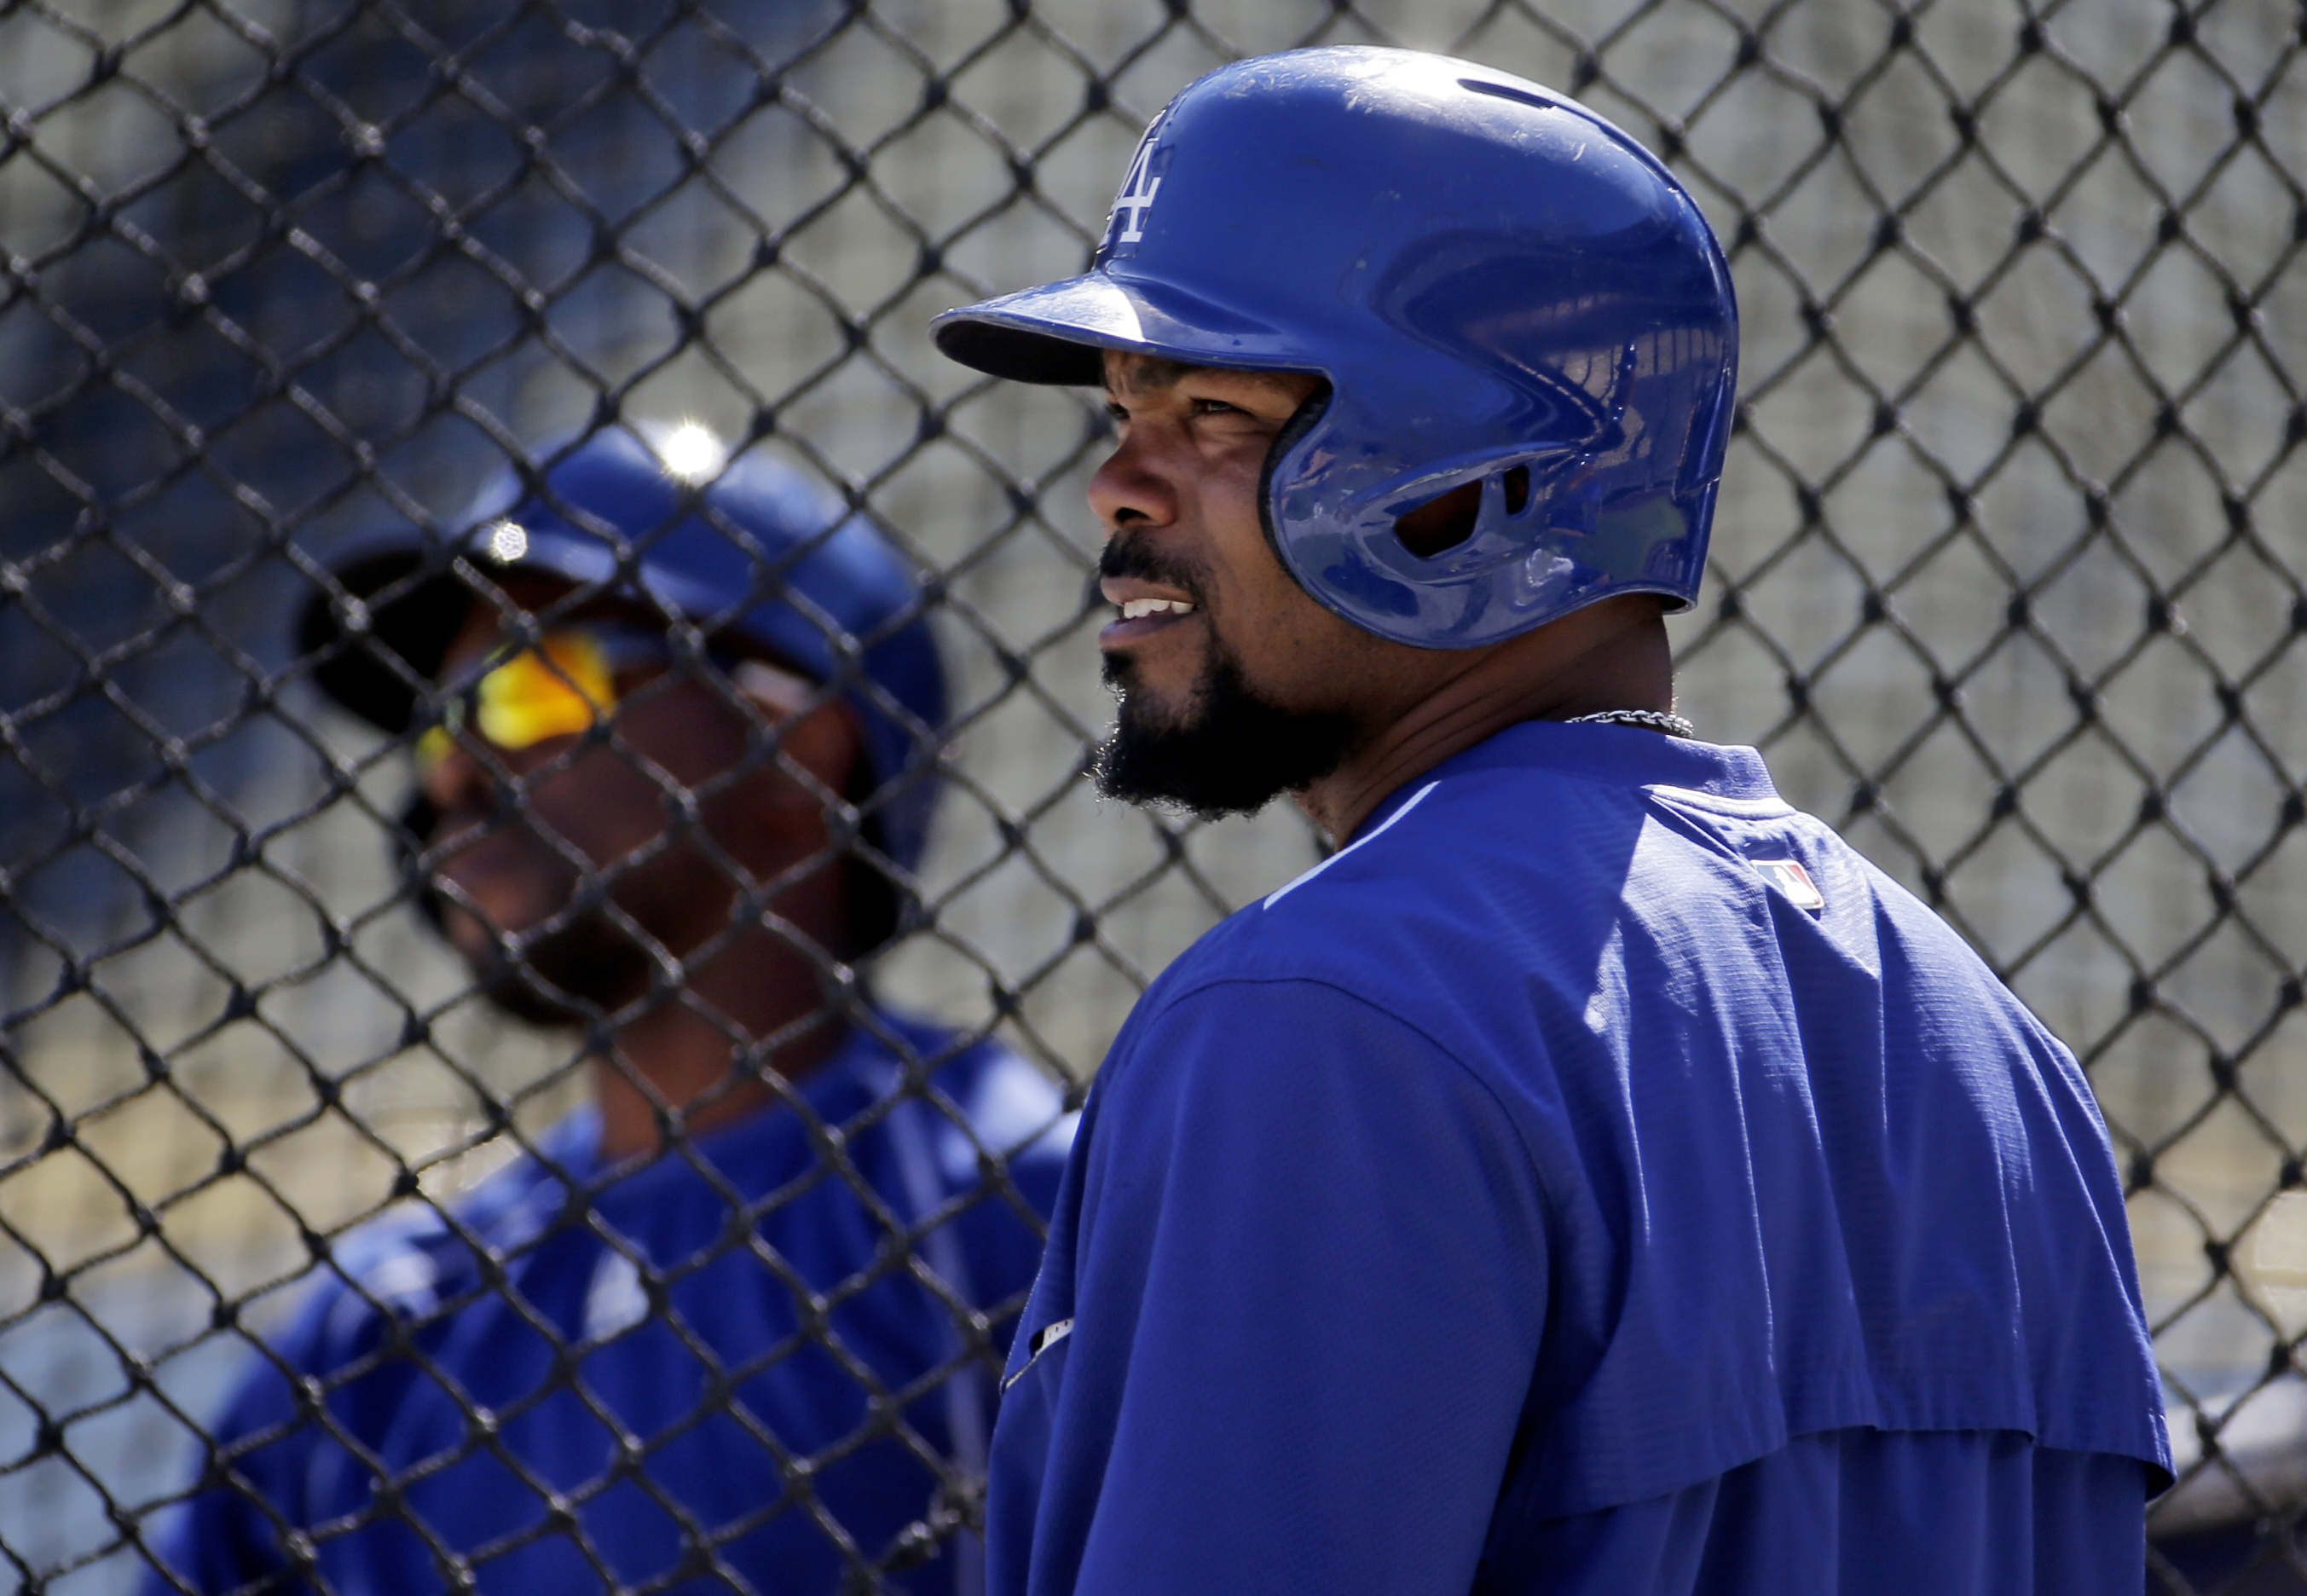 Los Angeles Dodgers second baseman Howie Kendrick watches during batting practice for during workouts in preparation for the National League Division Series that is set to begin on Friday, Thursday, Oct. 8, 2015 in Los Angeles. (AP Photo/Chris Carlson)